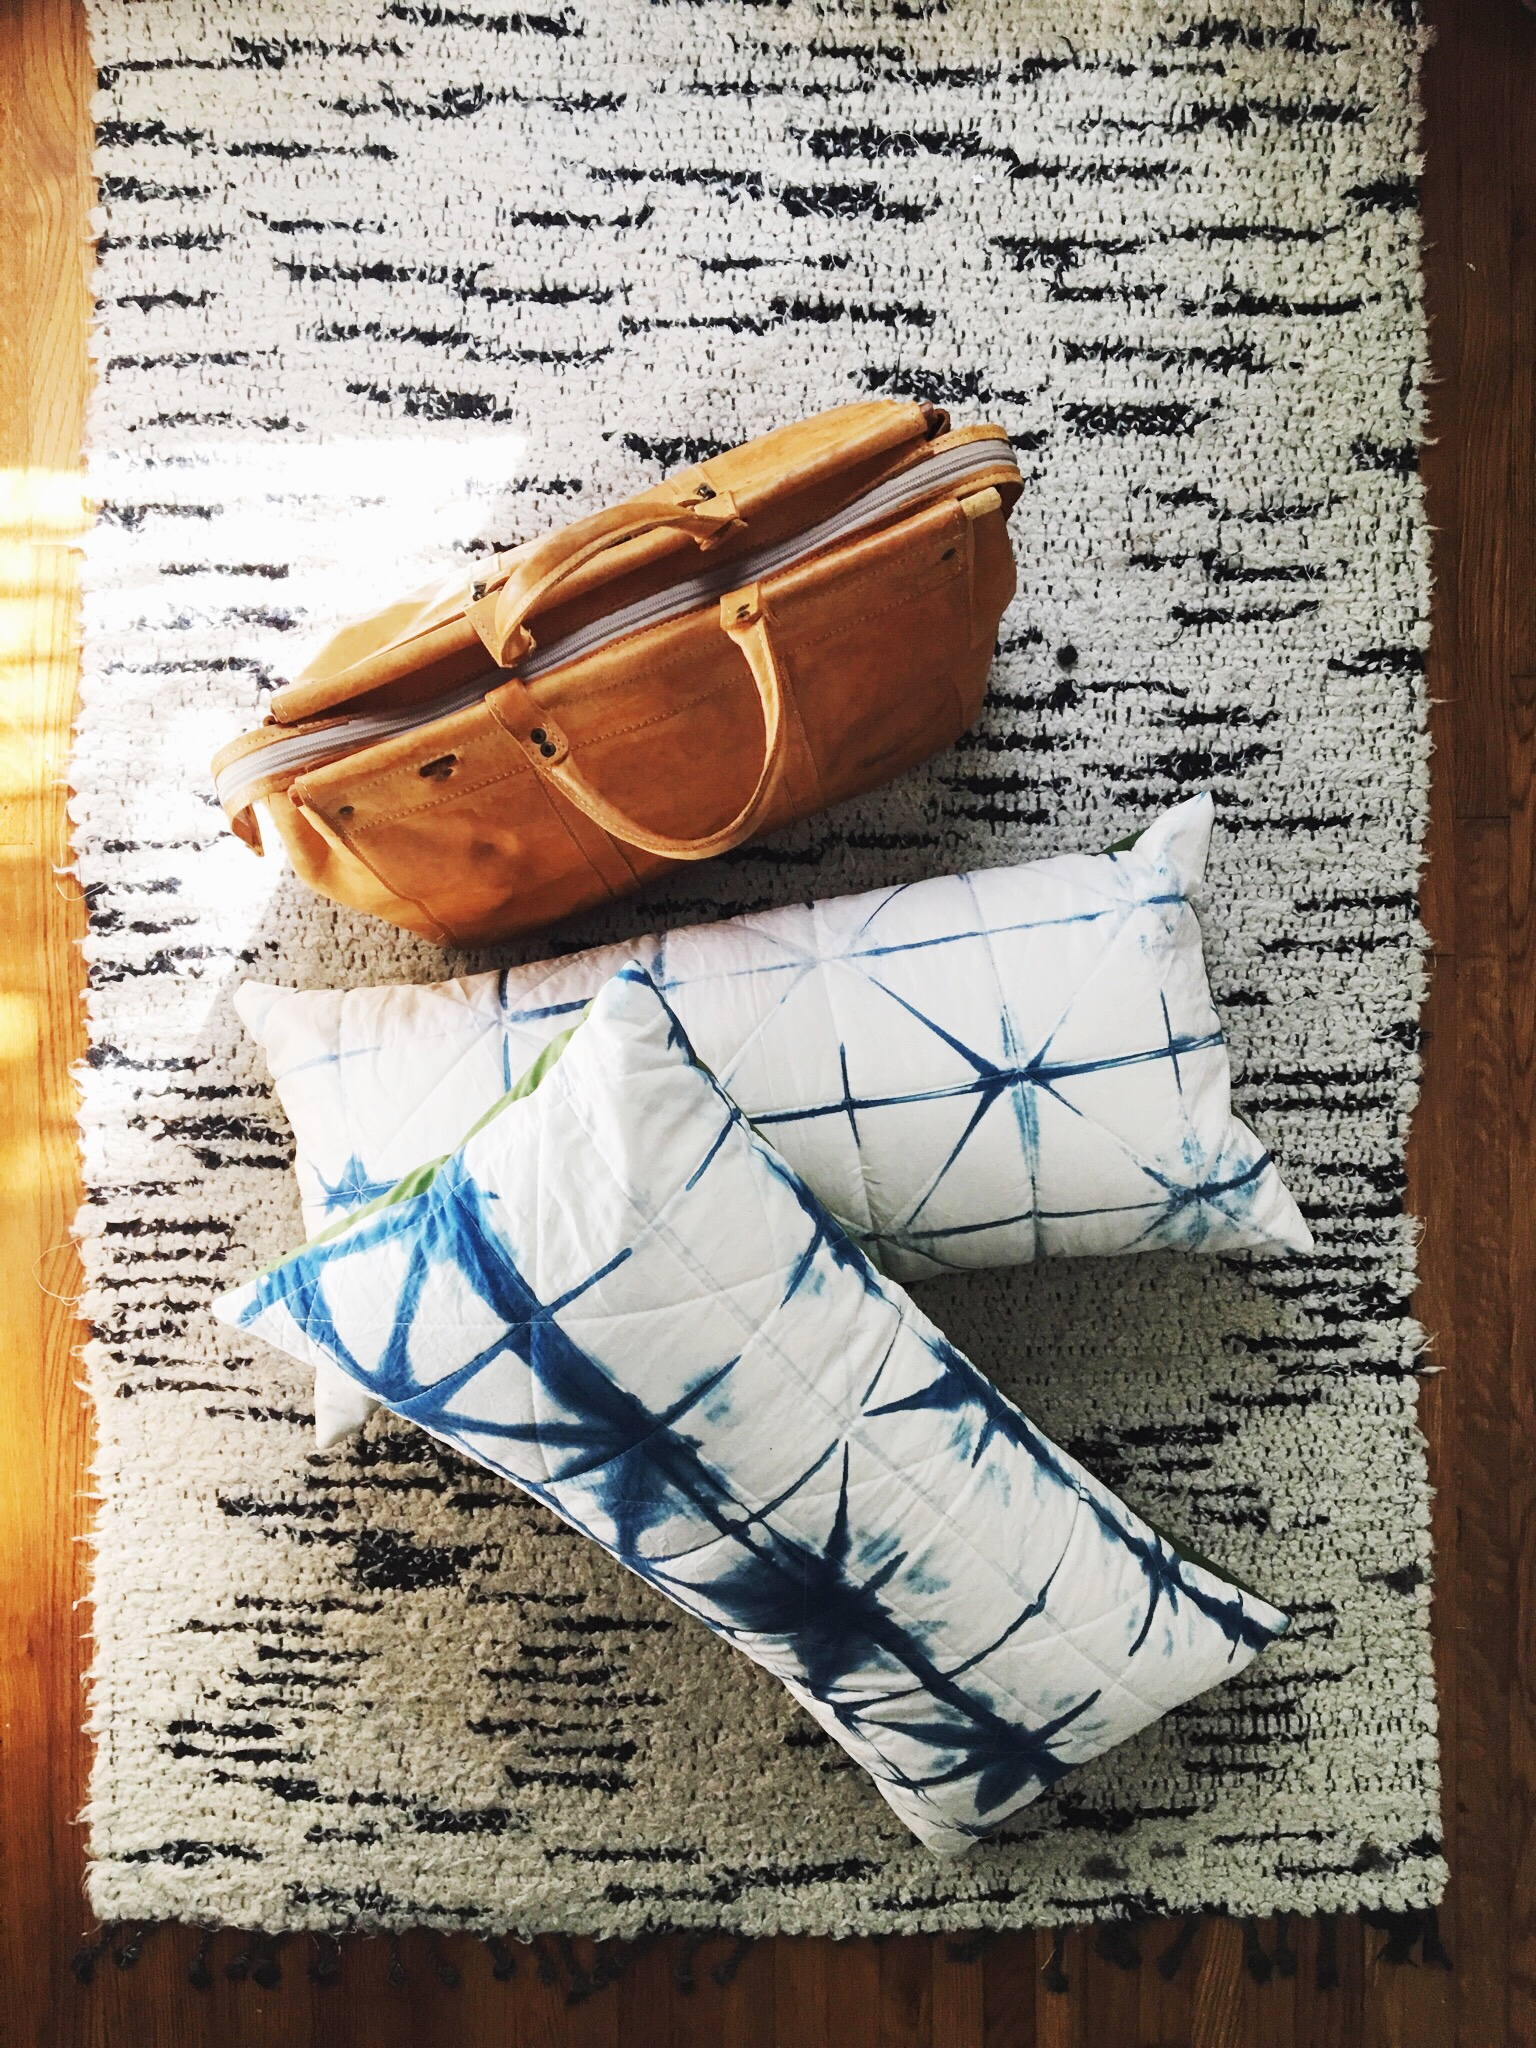 Daly made some pillows for her bed out of her  House Sparrow Fine Nesting shibori fabric she dyed herself at one of Tasha's classes!  Owl and Drum fabric and lessons to make the envelope pillows and to quilt the fronts. Sewing retreats make dreams come true.